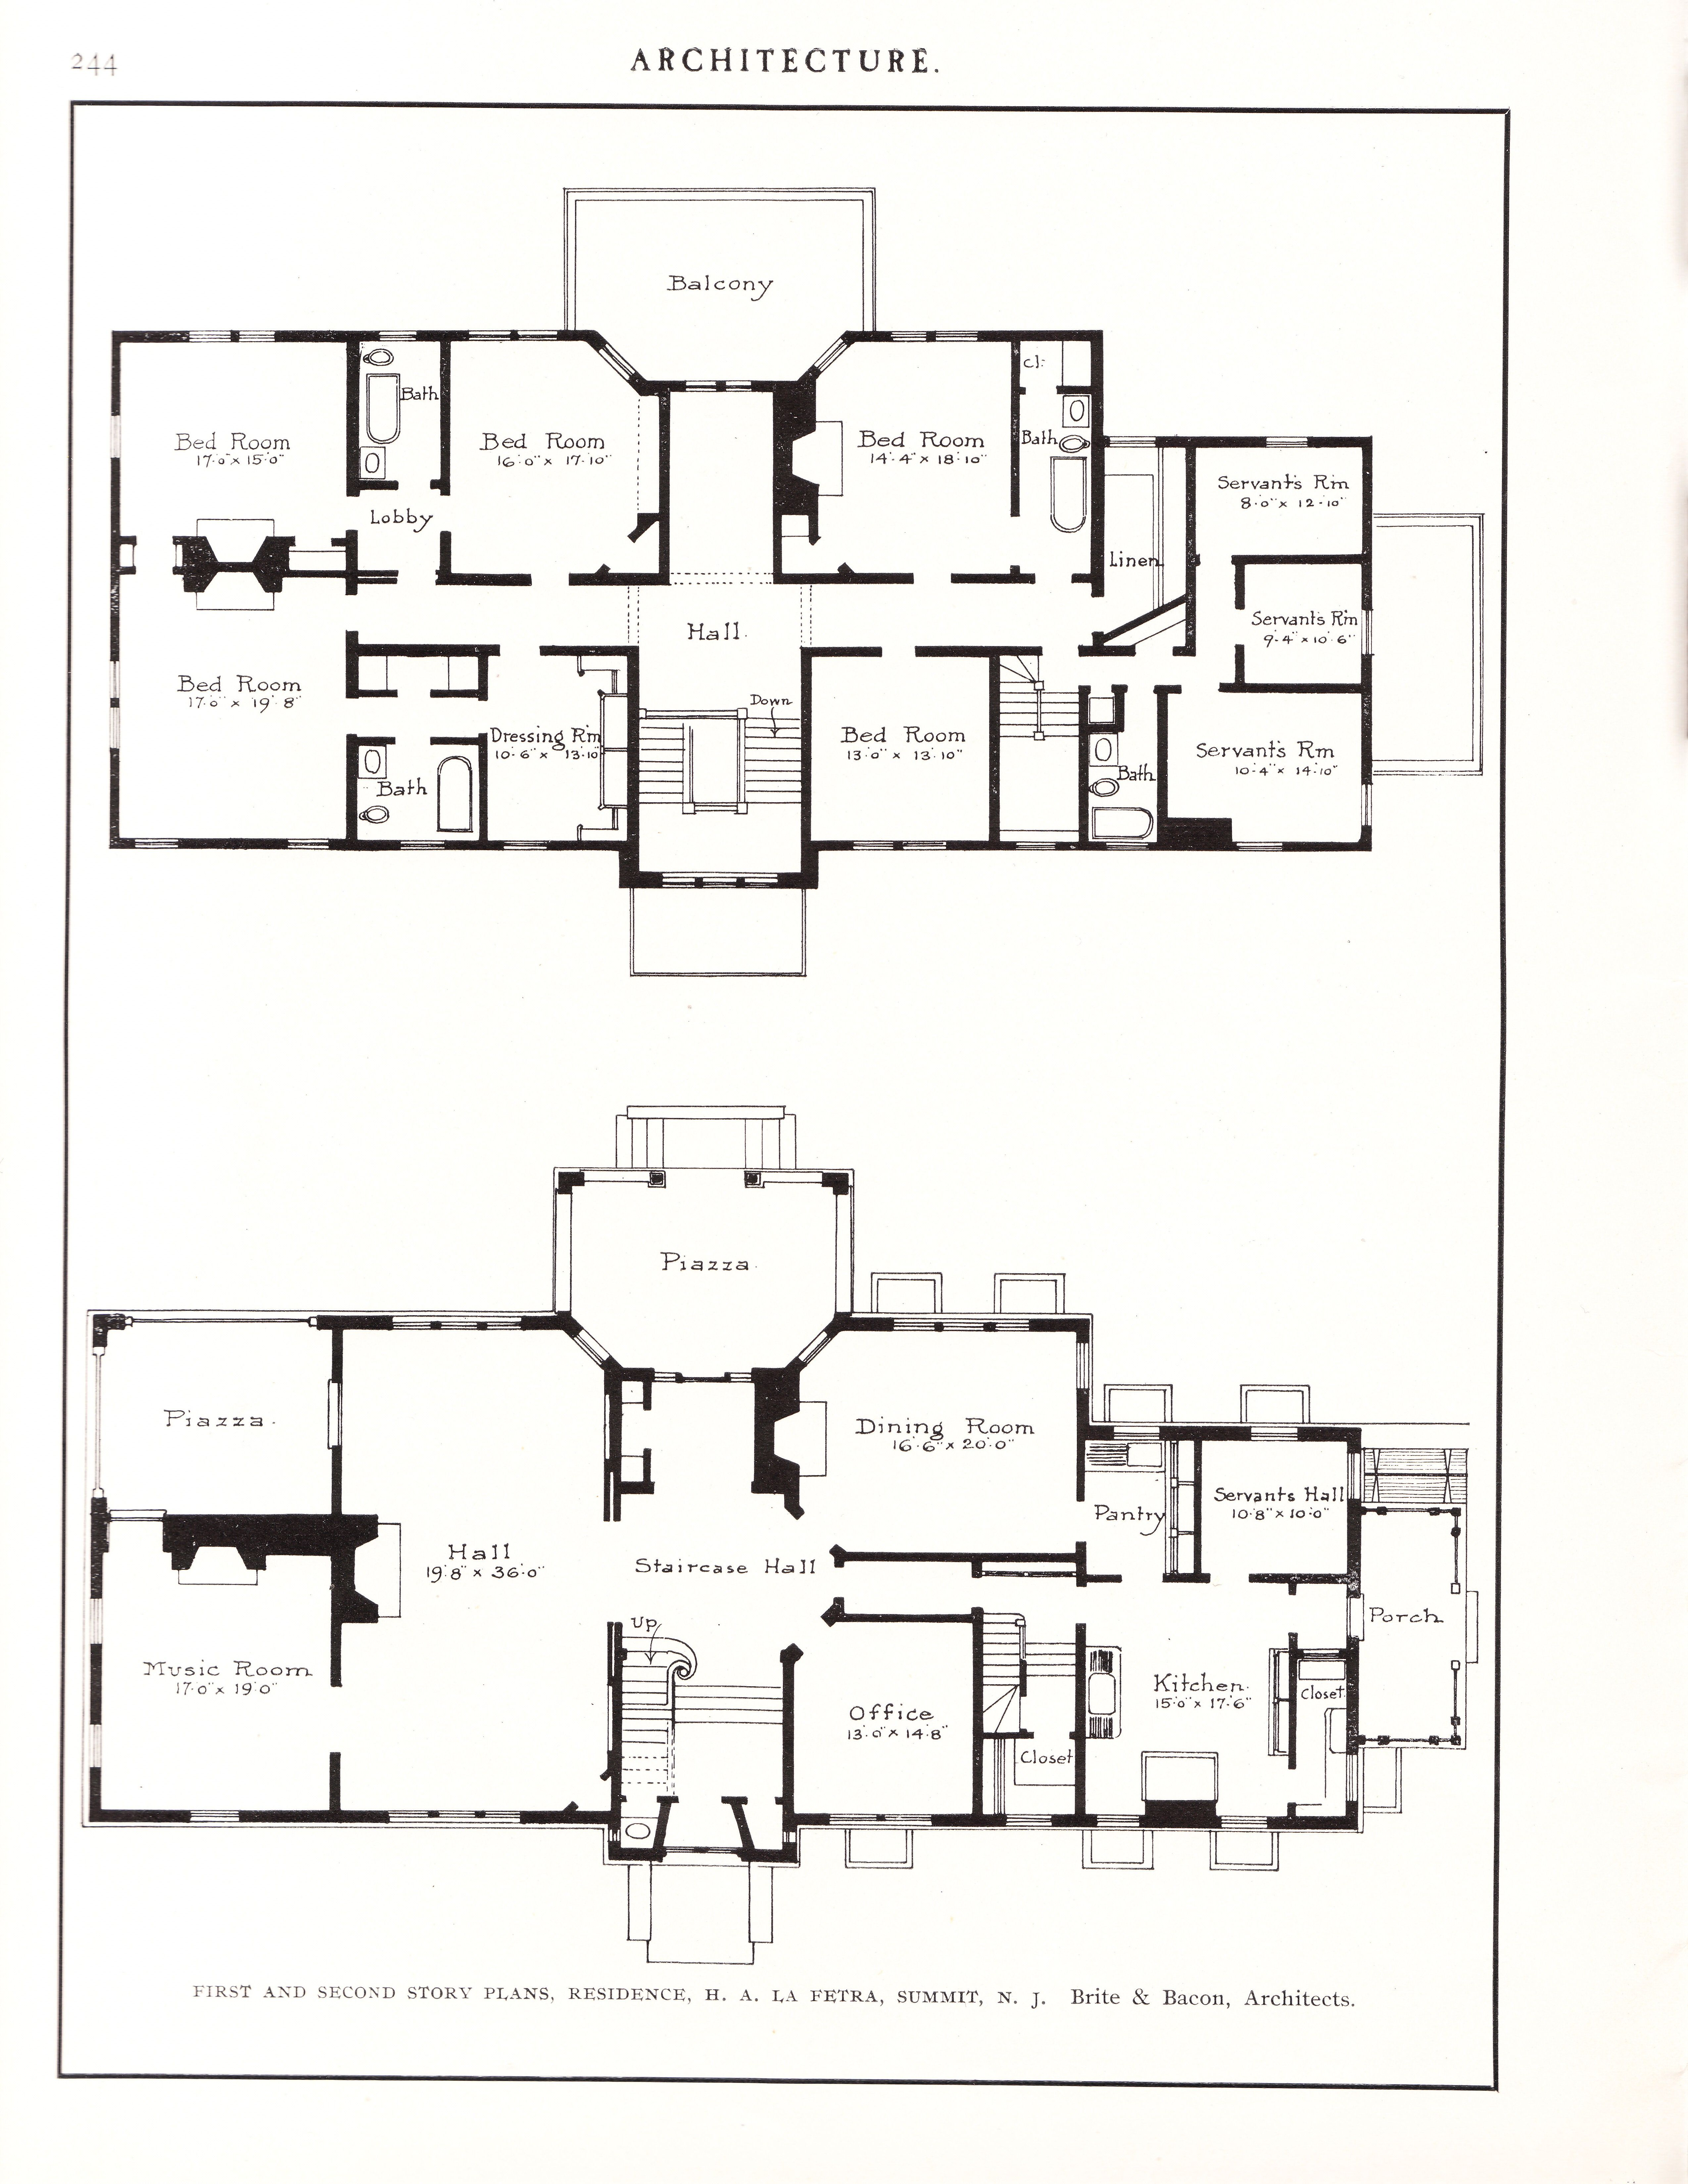 House Building Plans Software 2021 Free House Plan Software Free House Plans Floor Plan Design